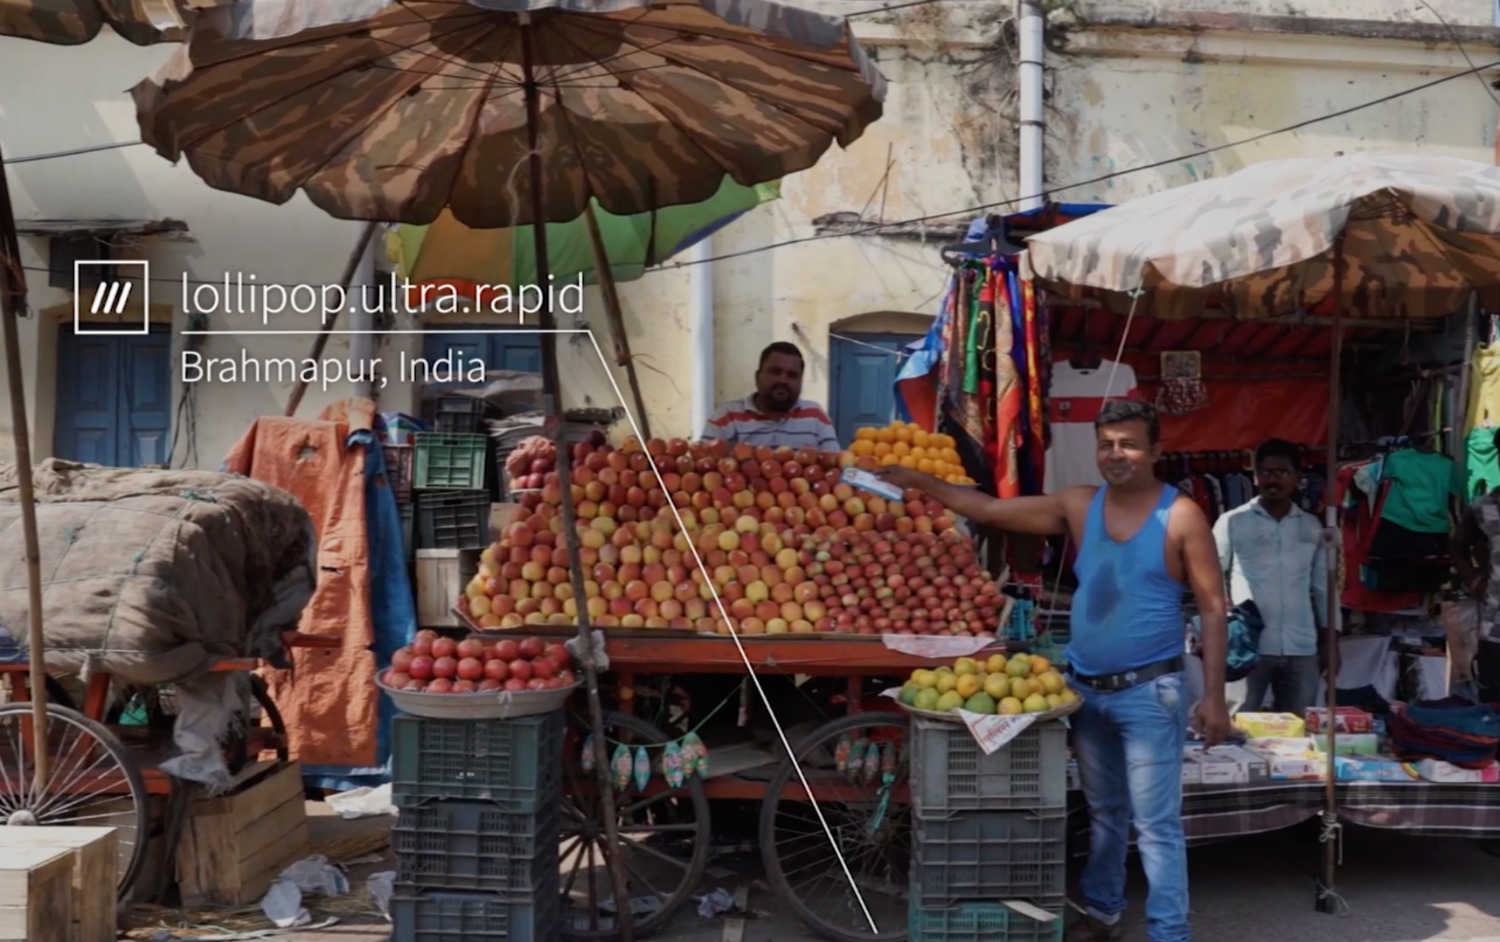 fruit stall in market at 3 word location lollipop.ultra.rapid